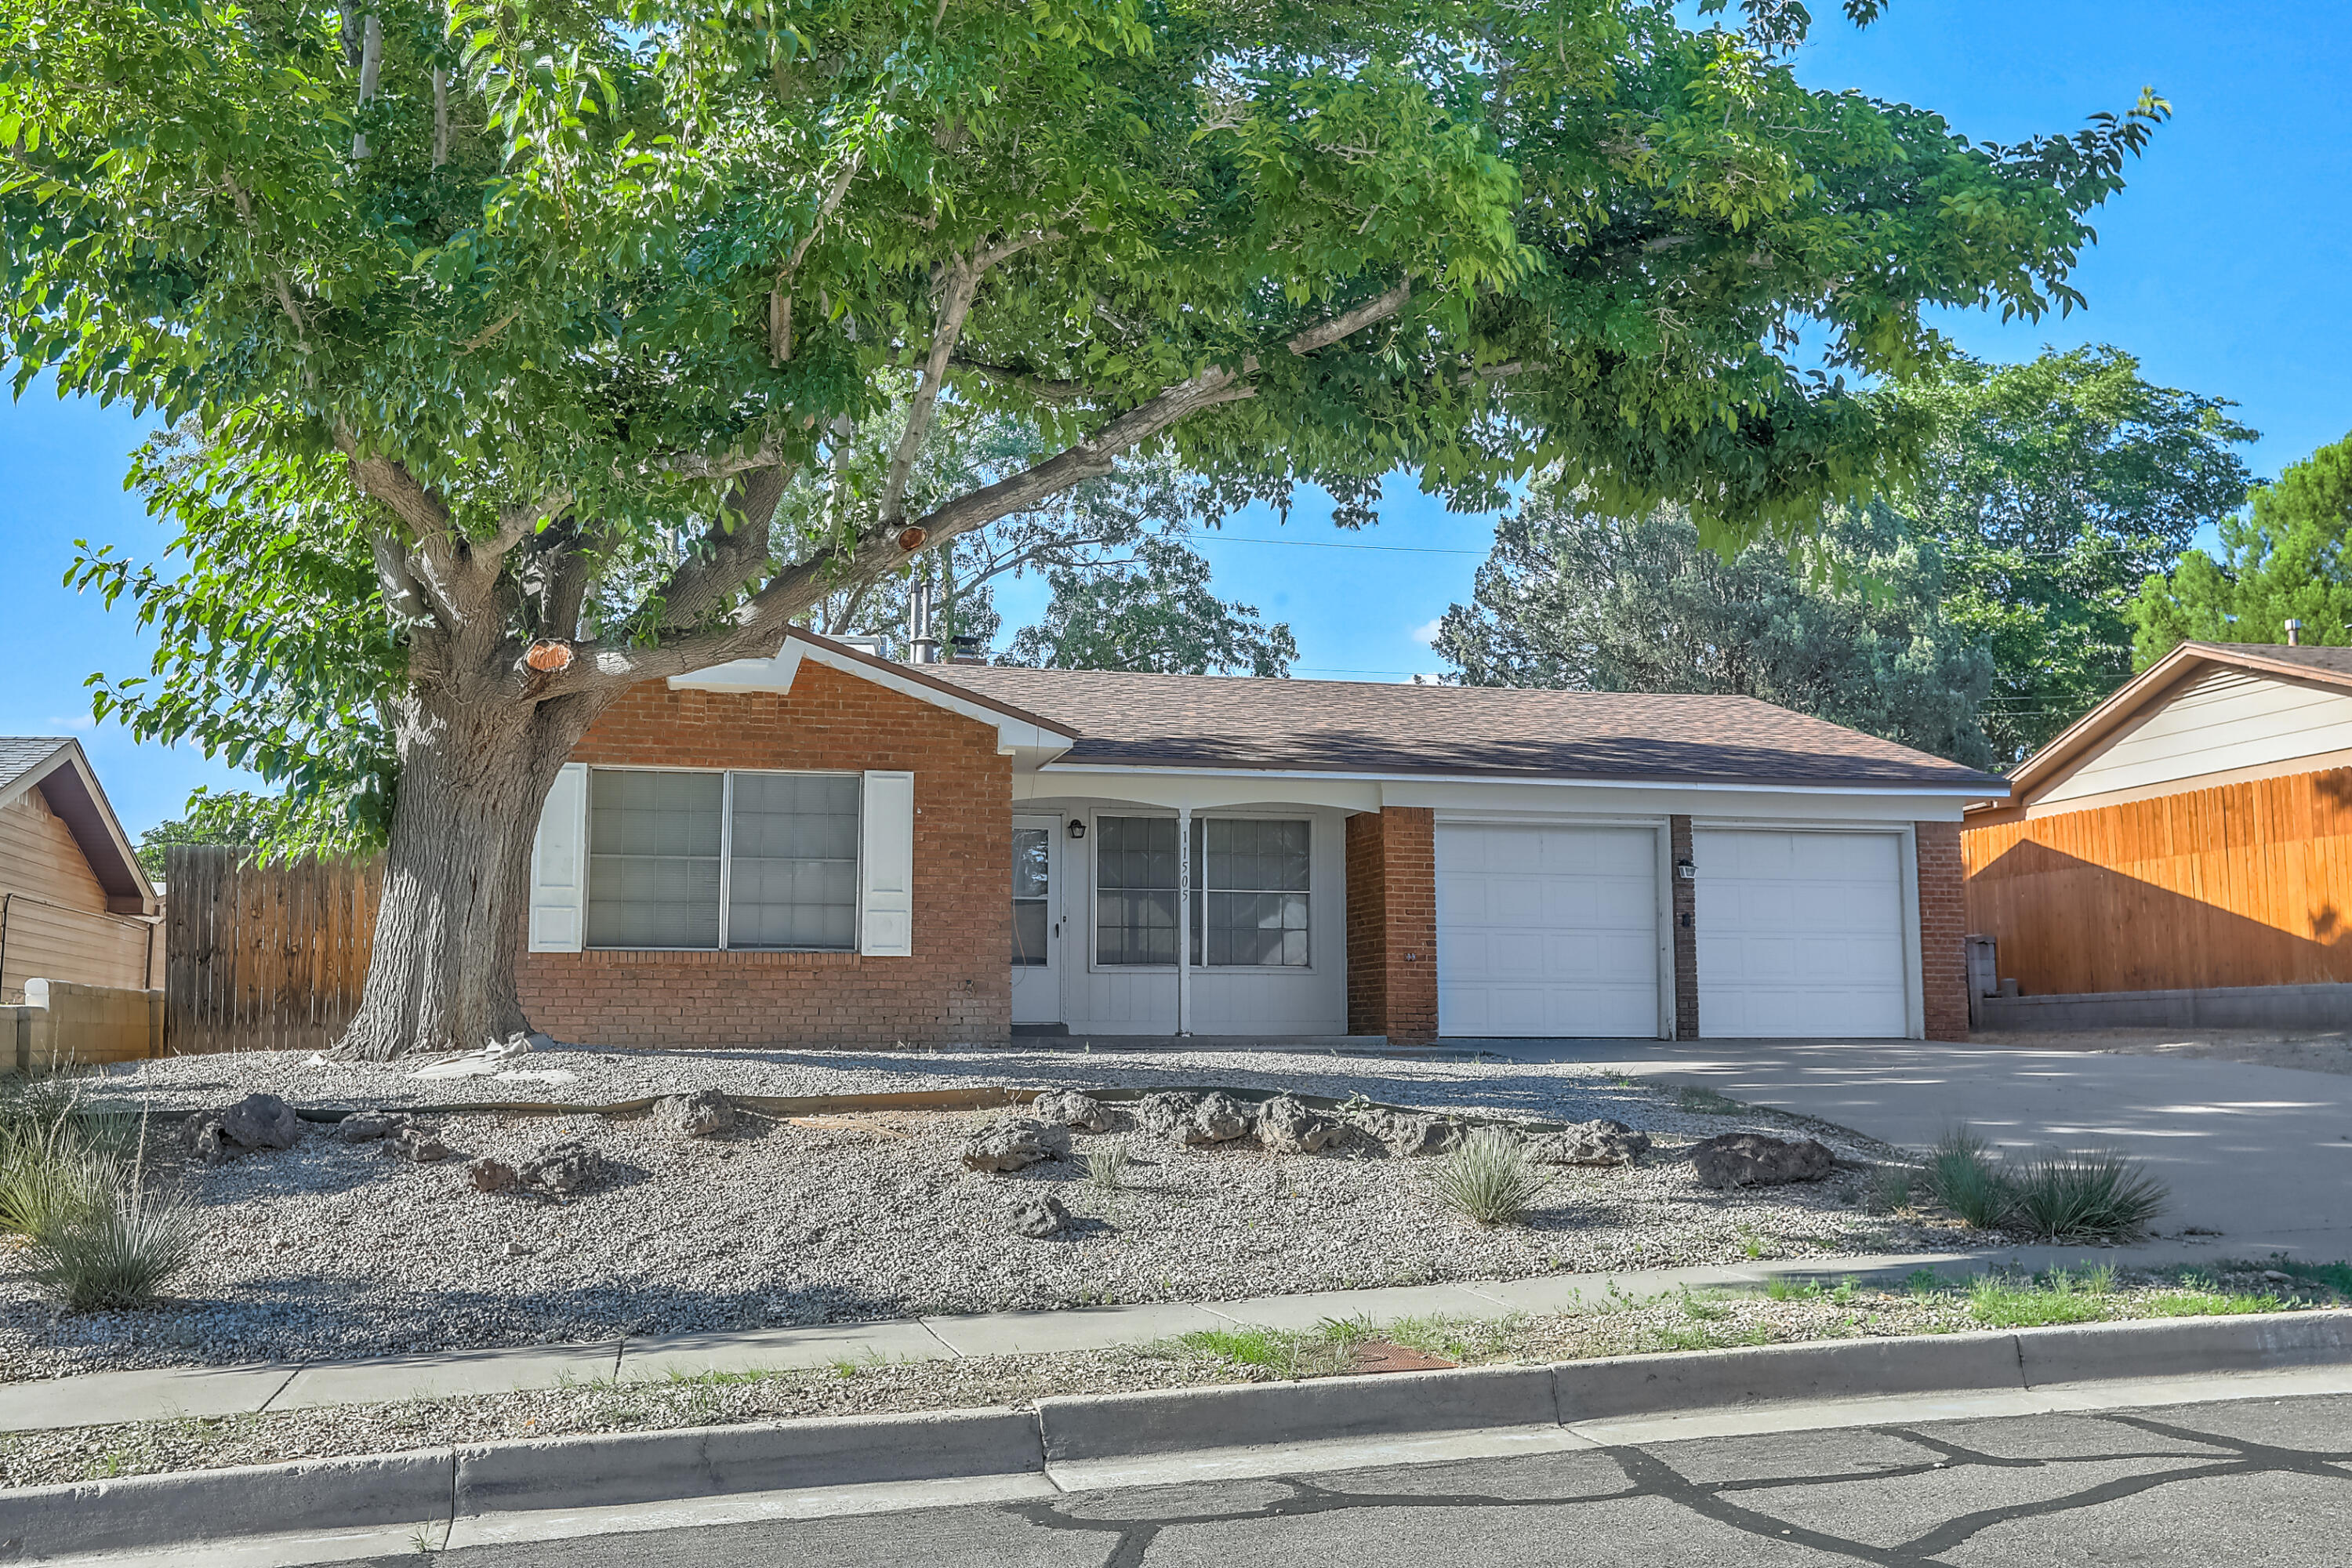 Come see this 3 bedroom, 2 bathroom starter home or investment property in the NE Heights. Home has amazing potential and is waiting for its new owner. Conveniently located near gym, restaurants and grocery store. No property disclosure. New roof in May of 2020.